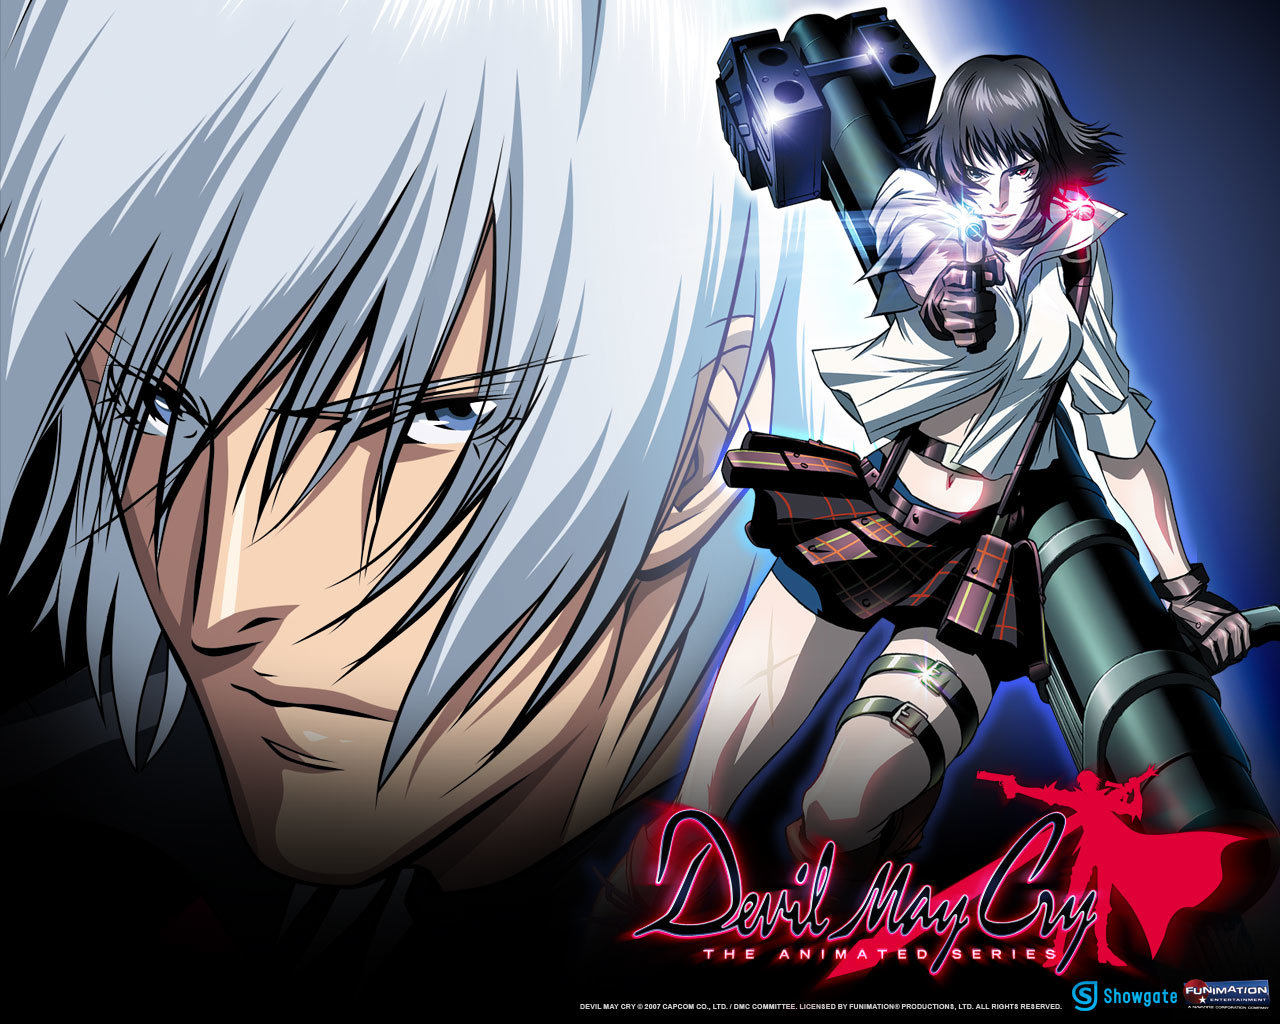 Download hd 1280x1024 Devil May Cry Anime PC background ID:315075 for free